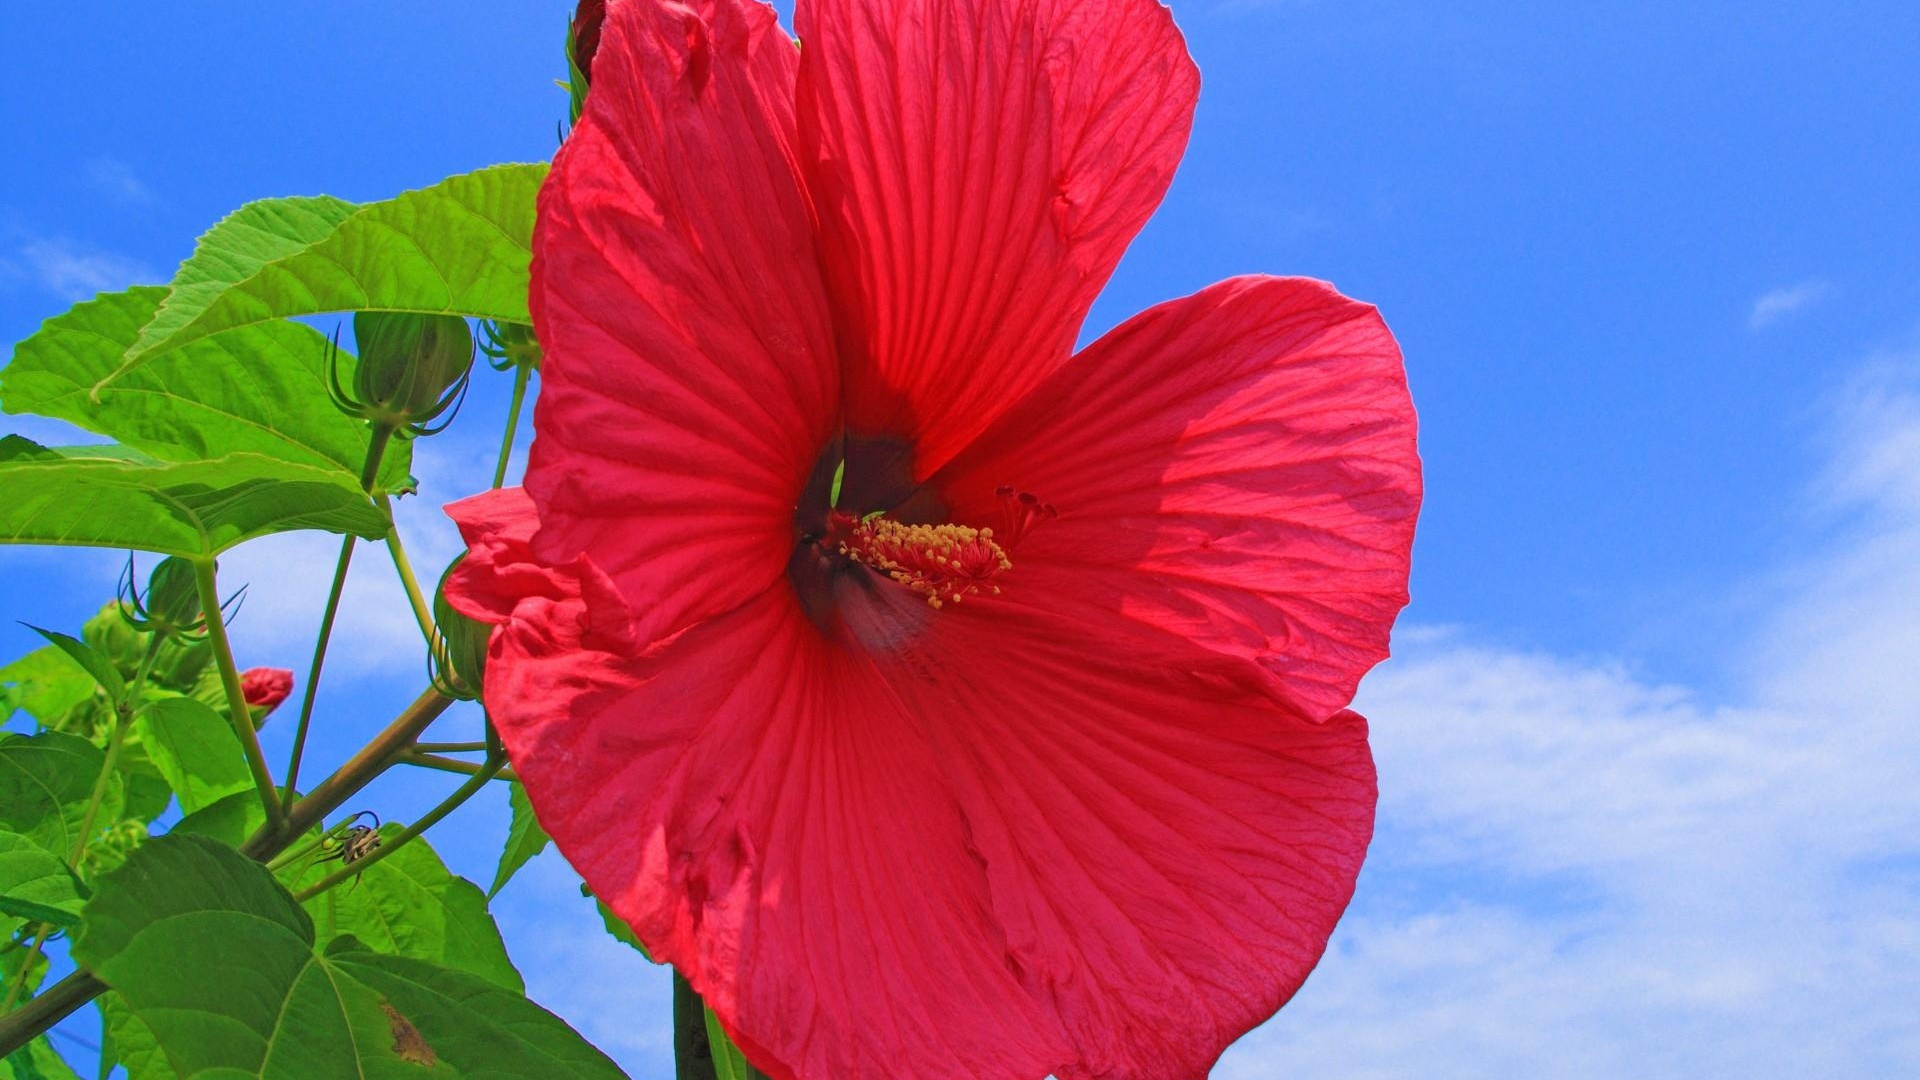 download wallpaper 1920x1080 hibiscus, red, bright, sky, clouds, sun